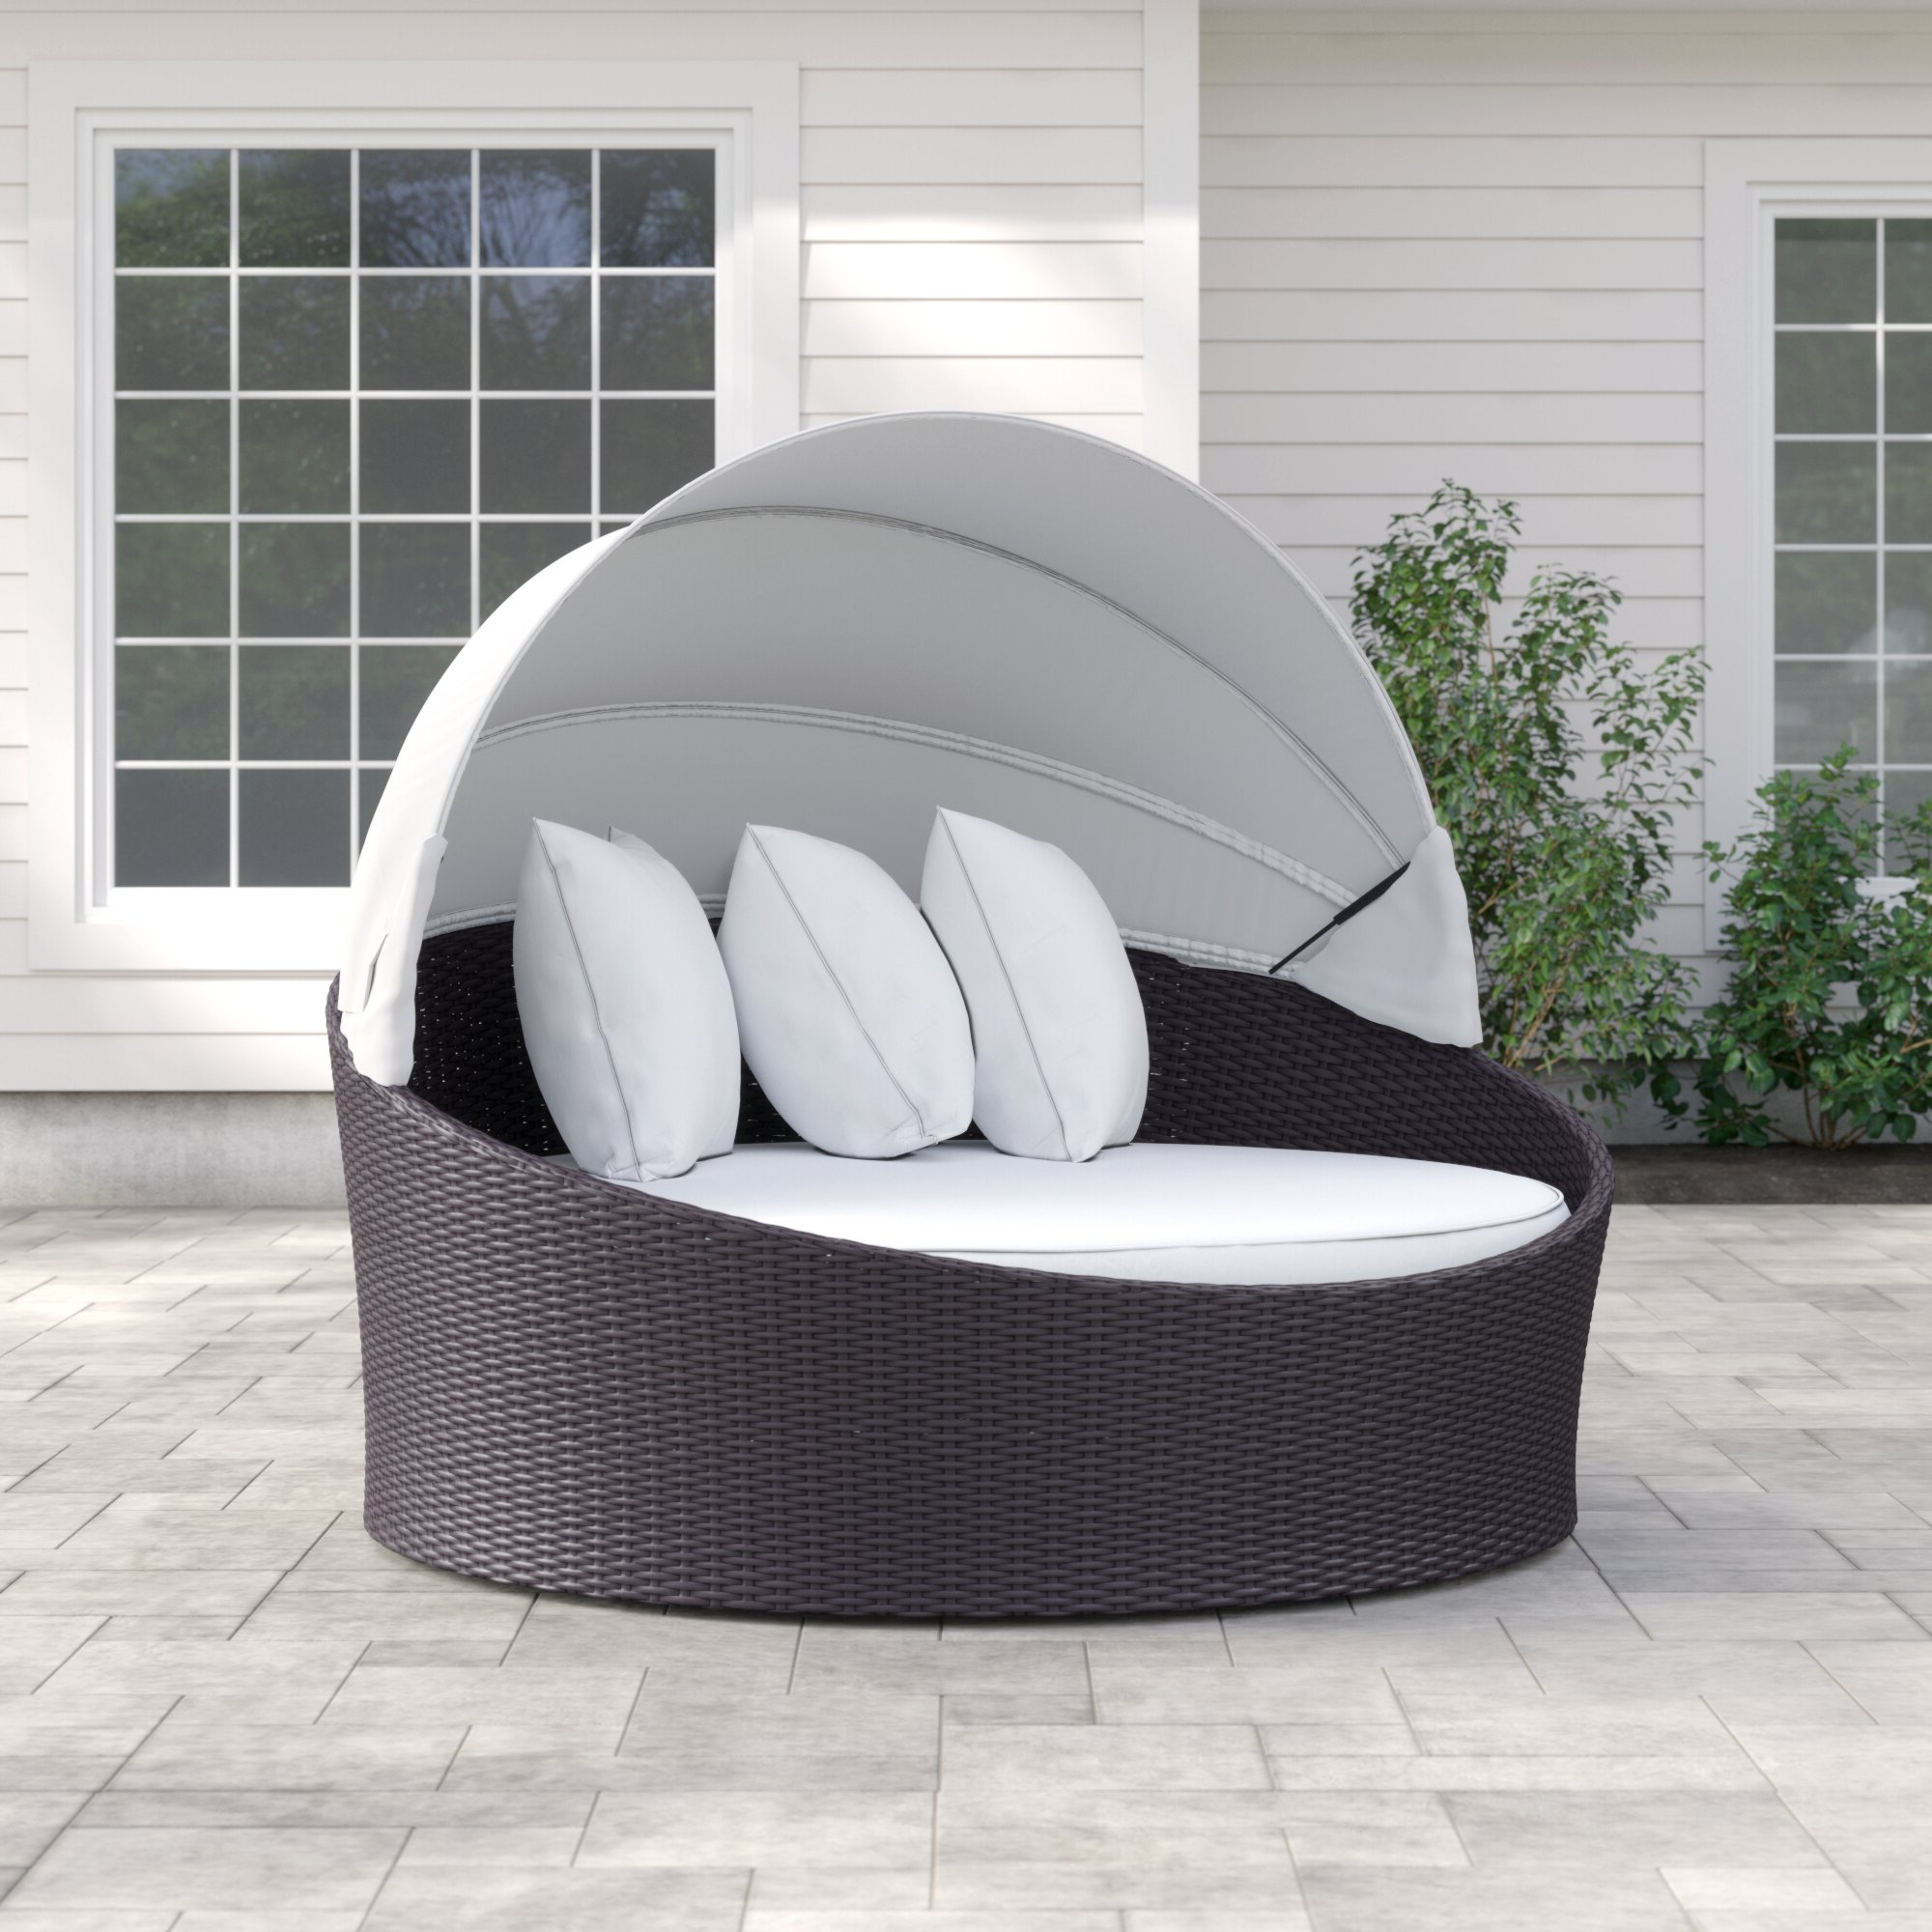 Well Known Harlow Patio Daybeds With Cushions In Brentwood Canopy Patio Daybed With Cushions (View 11 of 20)